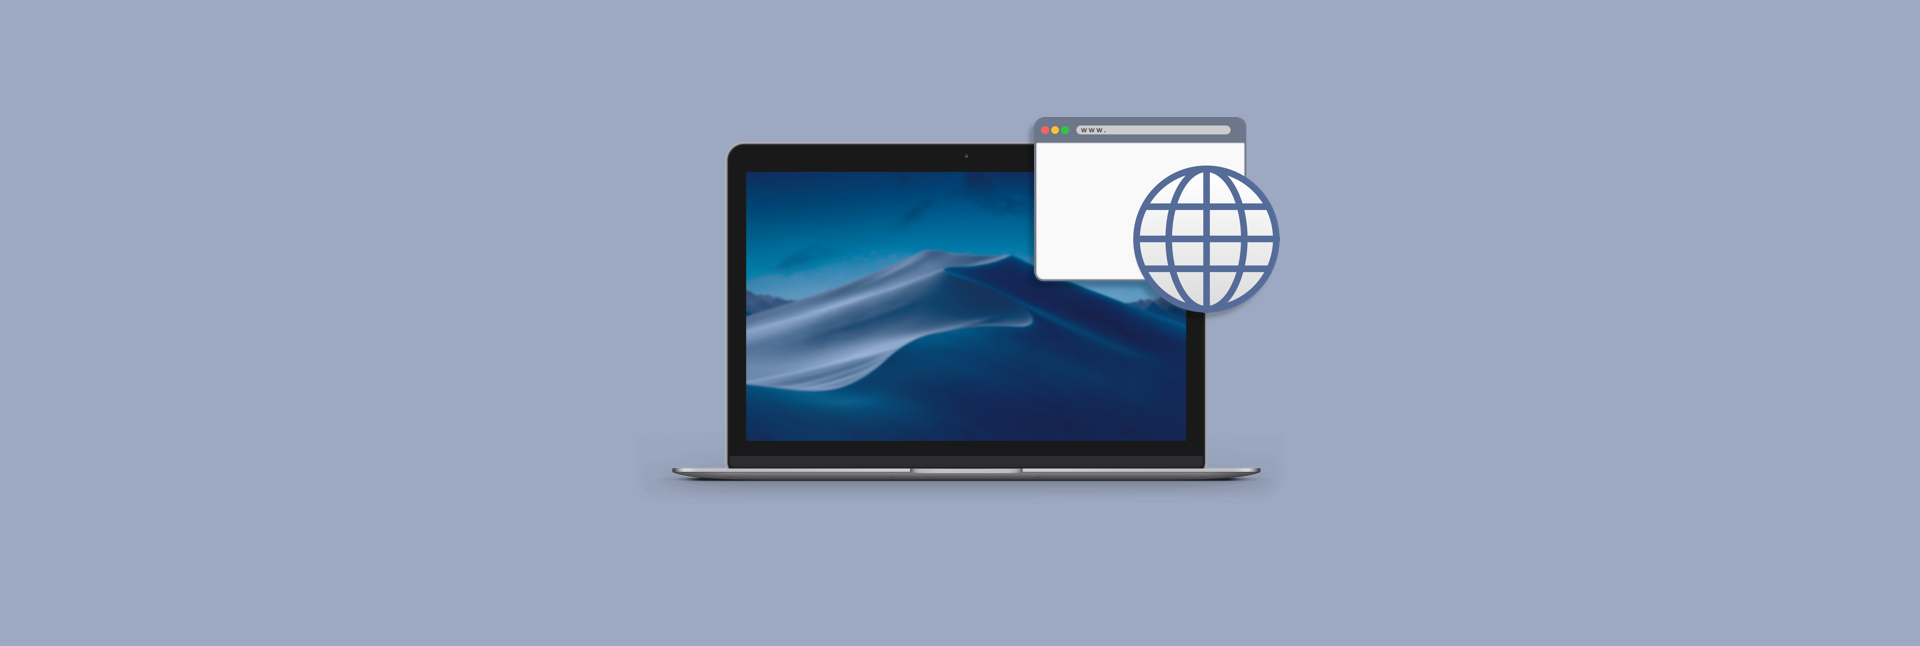 How To Change Default Apps On Mac With Ease – Setapp